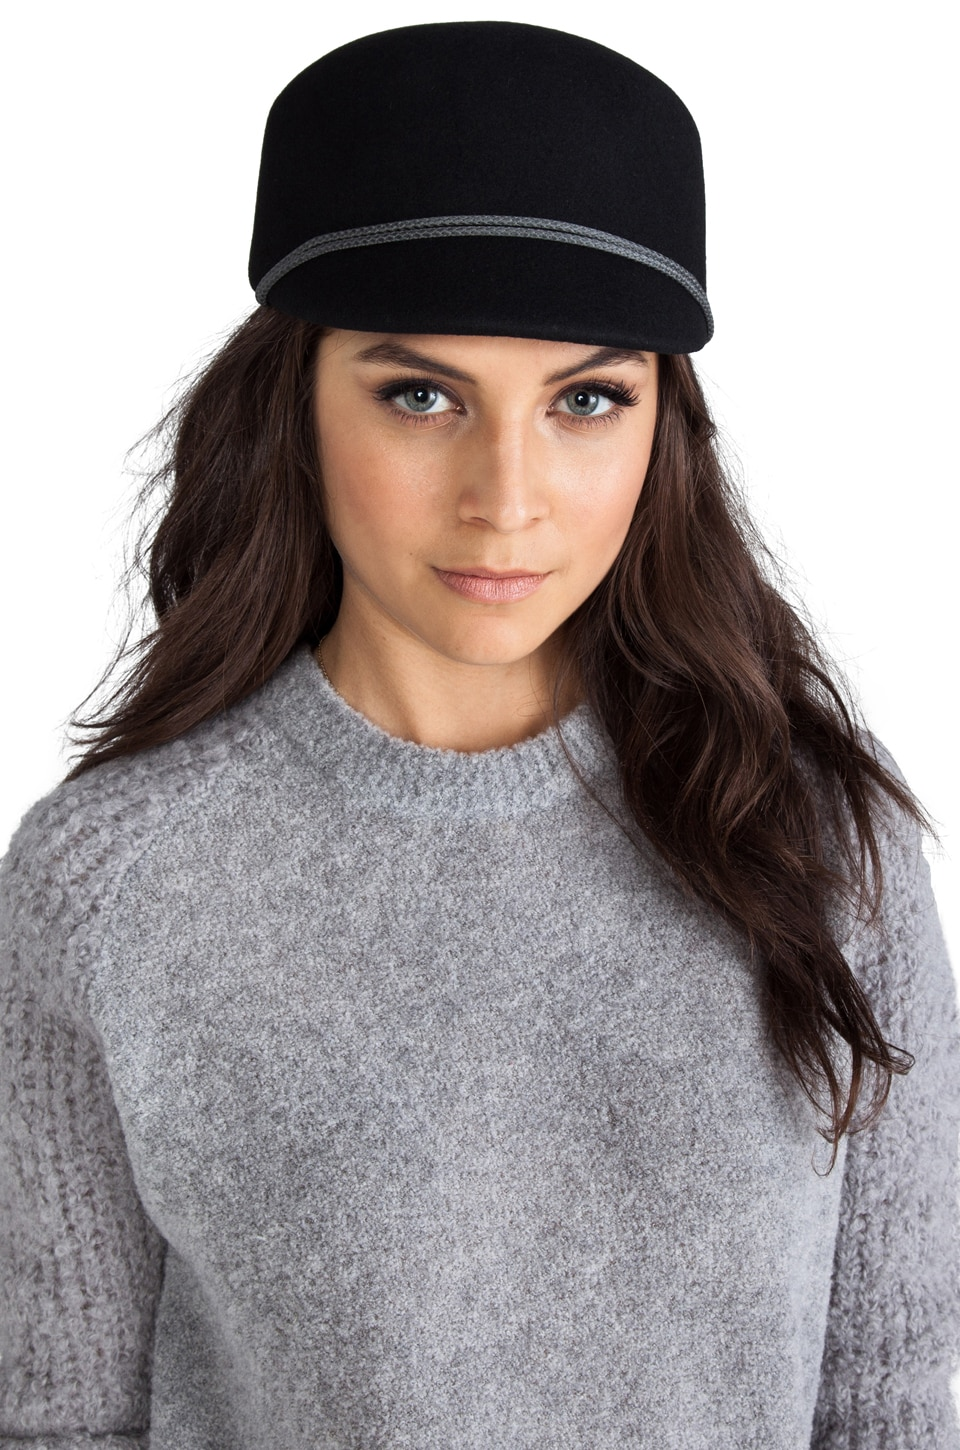 Genie by Eugenia Kim Bettina Hat in Black